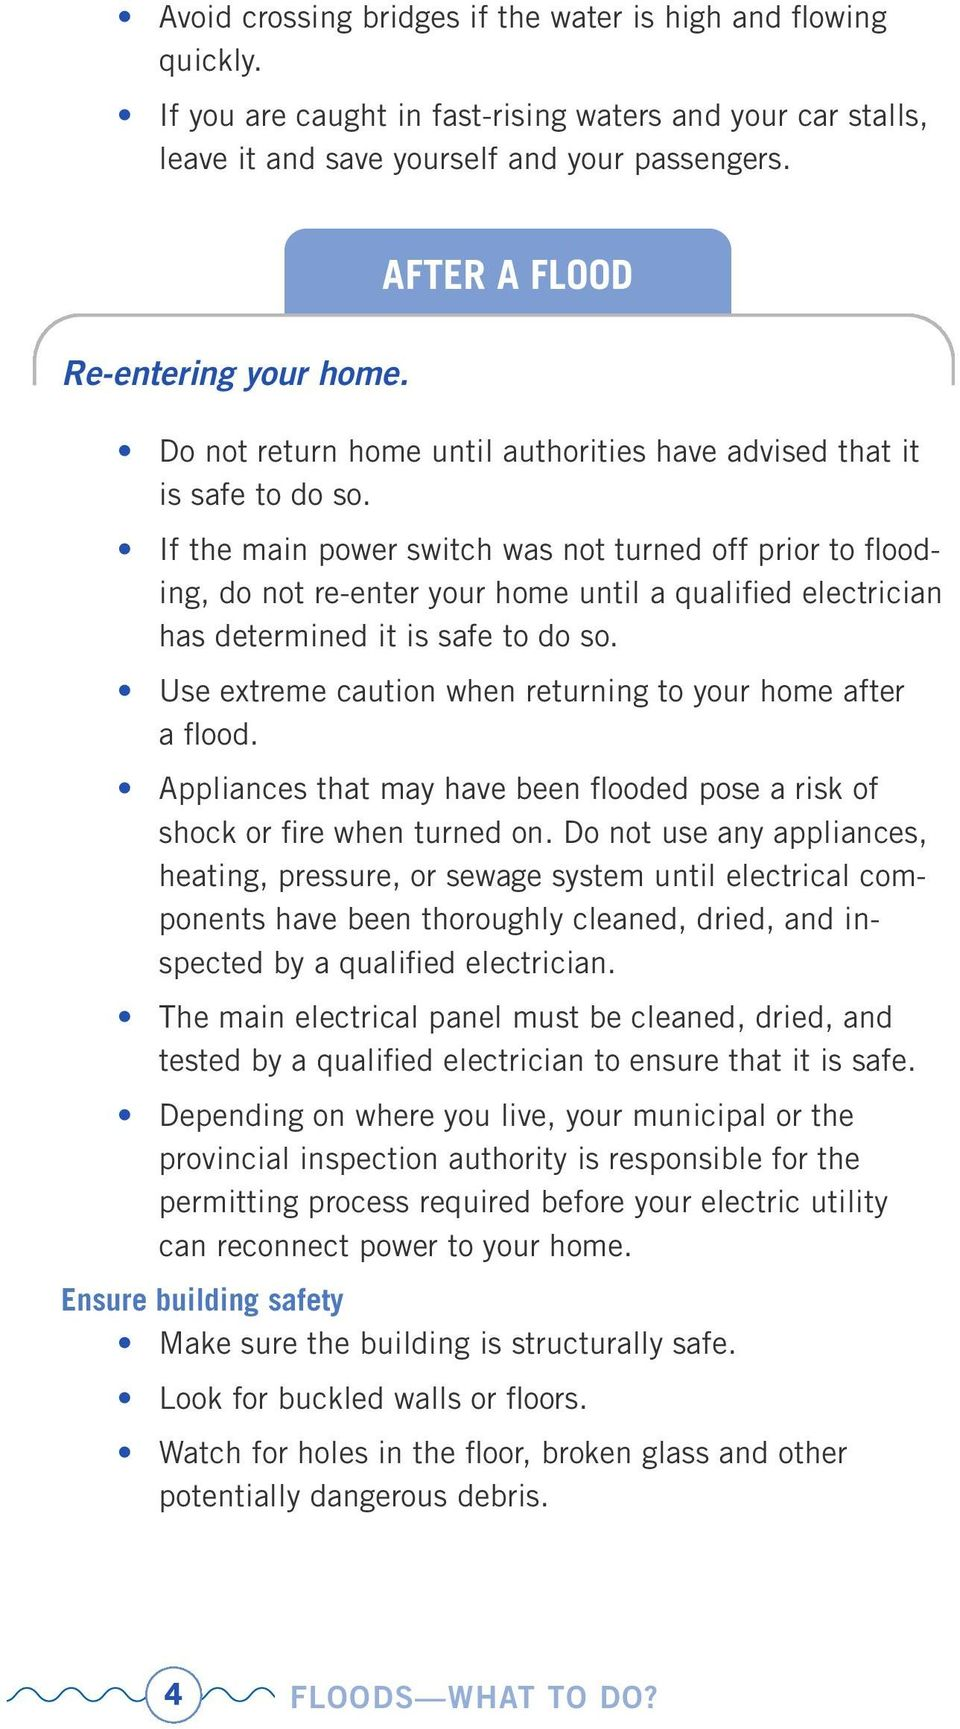 If the main power switch was not turned off prior to flooding, do not re-enter your home until a qualified electrician has determined it is safe to do so.